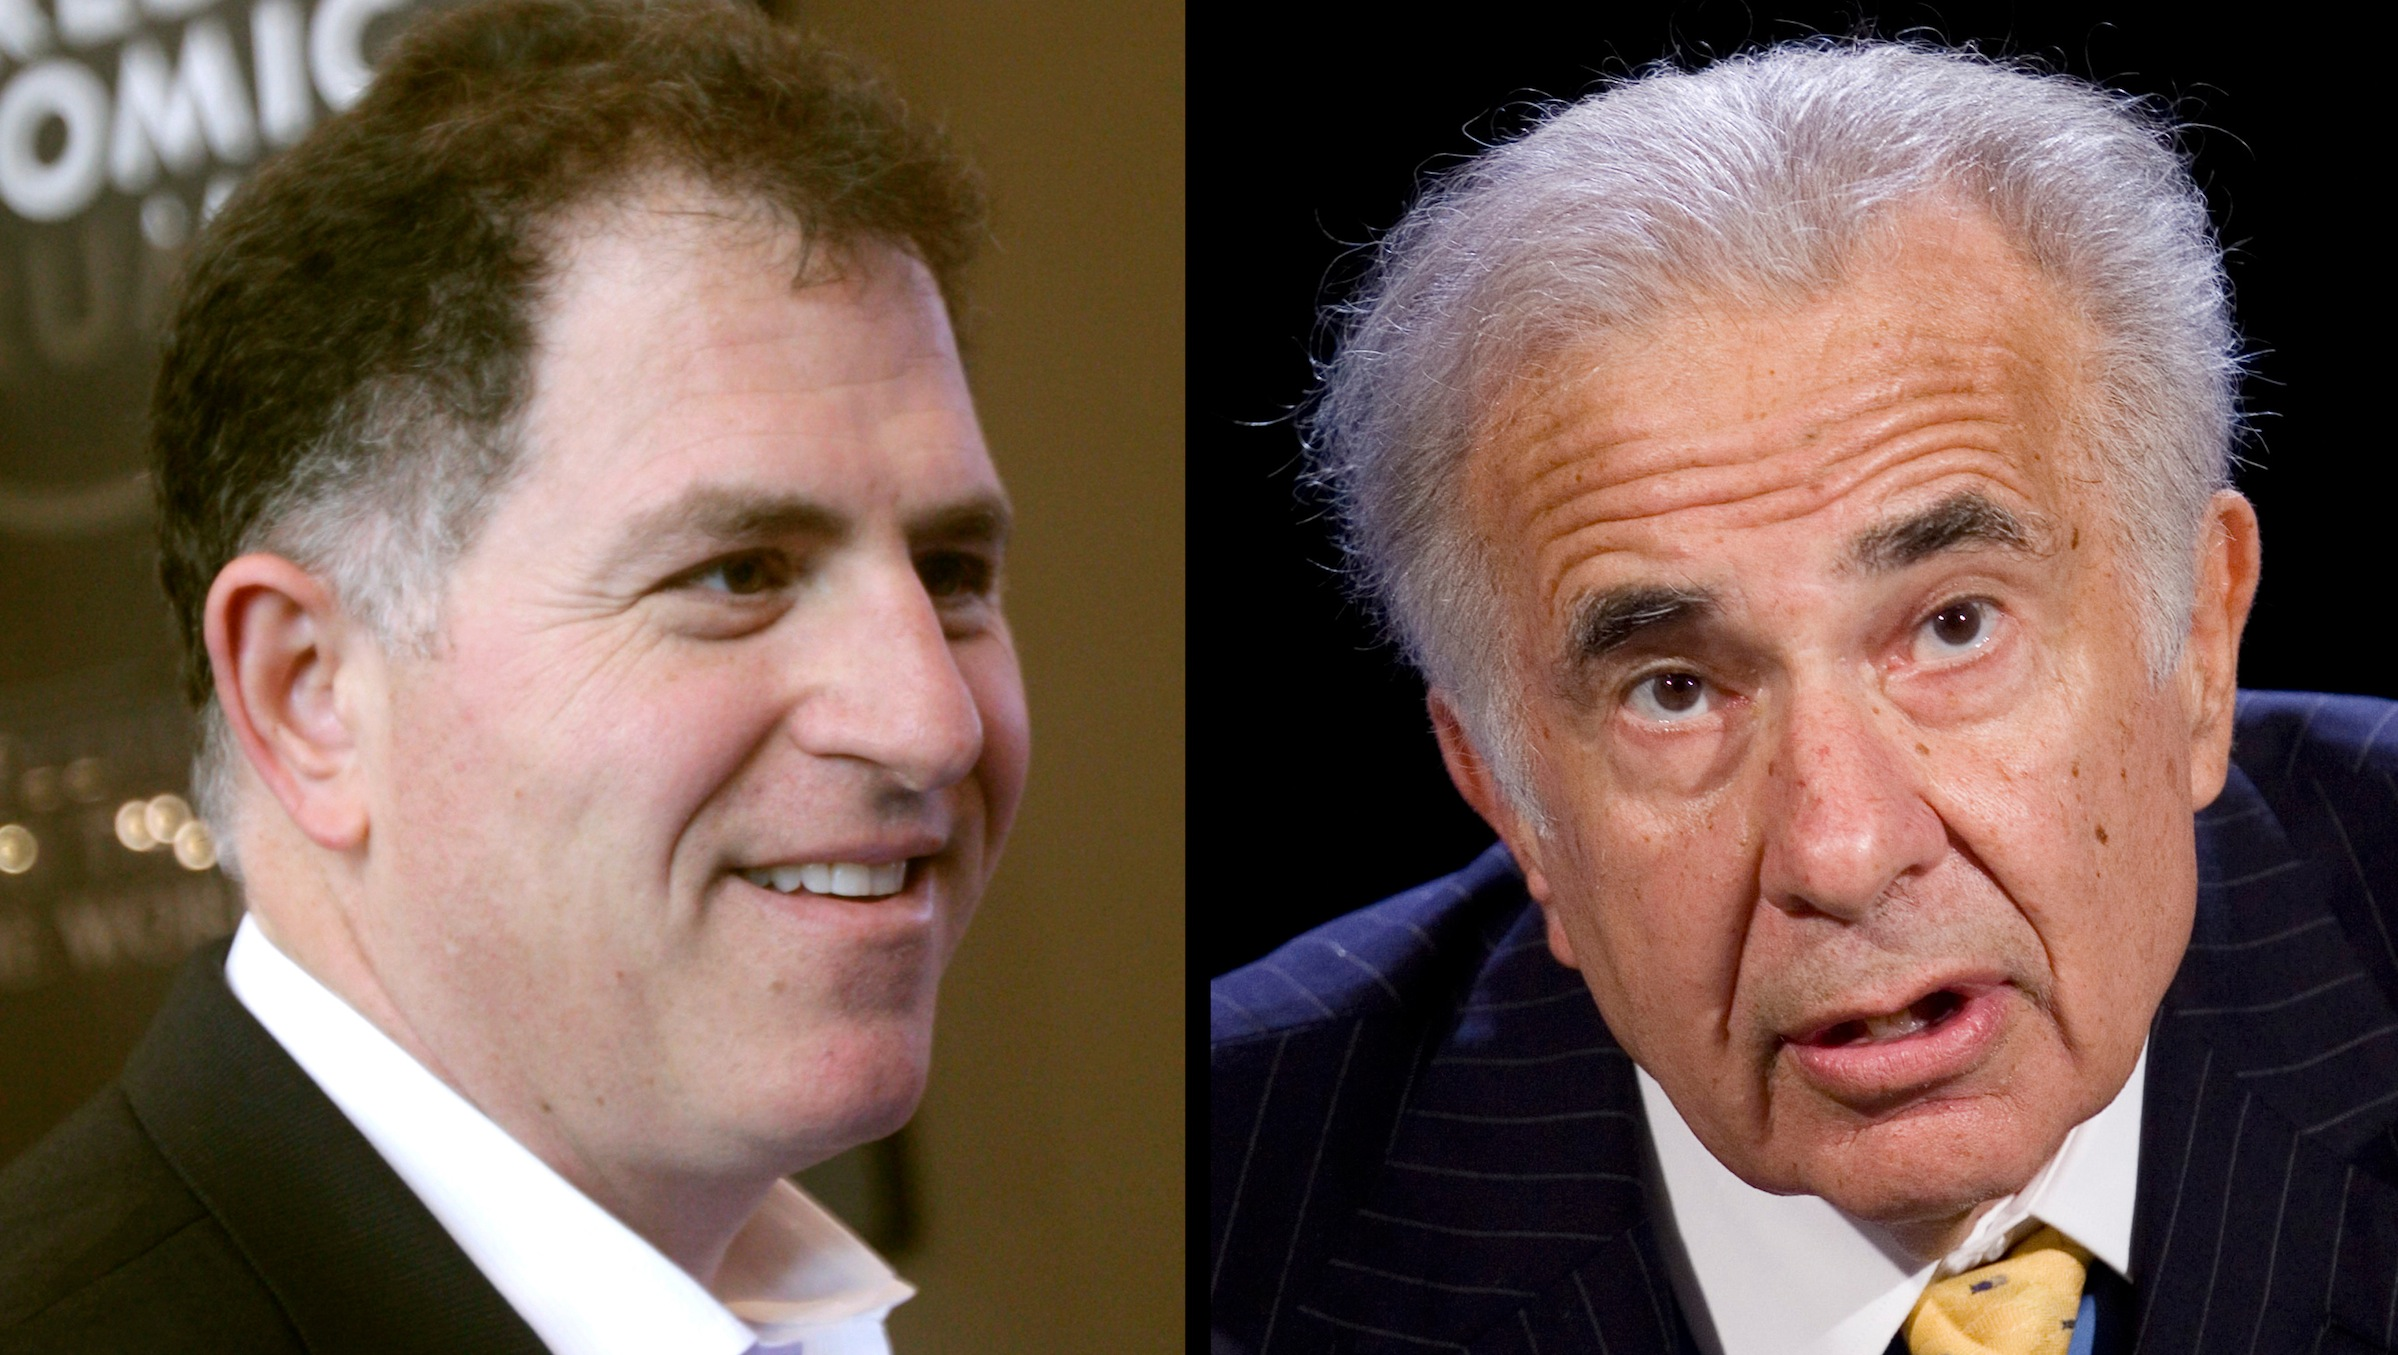 FILE - Dell founder Michael Dell, left, in a Jan. 26, 2011 file photo, and Carl Icahn, in an Oct. 7, 2007 file photo, are seen in a combination photo. Dell's largest independent shareholder has teamed with activist investor Icahn in another challenge to Michael Dell's $24.4 billion bid to take the struggling computer maker private. Southeastern Asset Management and Icahn said in a letter sent Thursday, May 9, 2013 to the Dell Inc. board that they want to let shareholders keep their stock and give them either $12 per share in cash or additional shares in a deal that keeps the company publicly traded. An investment group led by Michael Dell offered earlier this year to pay $13.65 per share in a deal that would take the company private. Southeastern and Icahn criticized that proposal in a scathing letter to Dell's board outlining their latest offer. (AP Photos/Dell-Virginia Mayo, Icahn-Mark Lennihan)